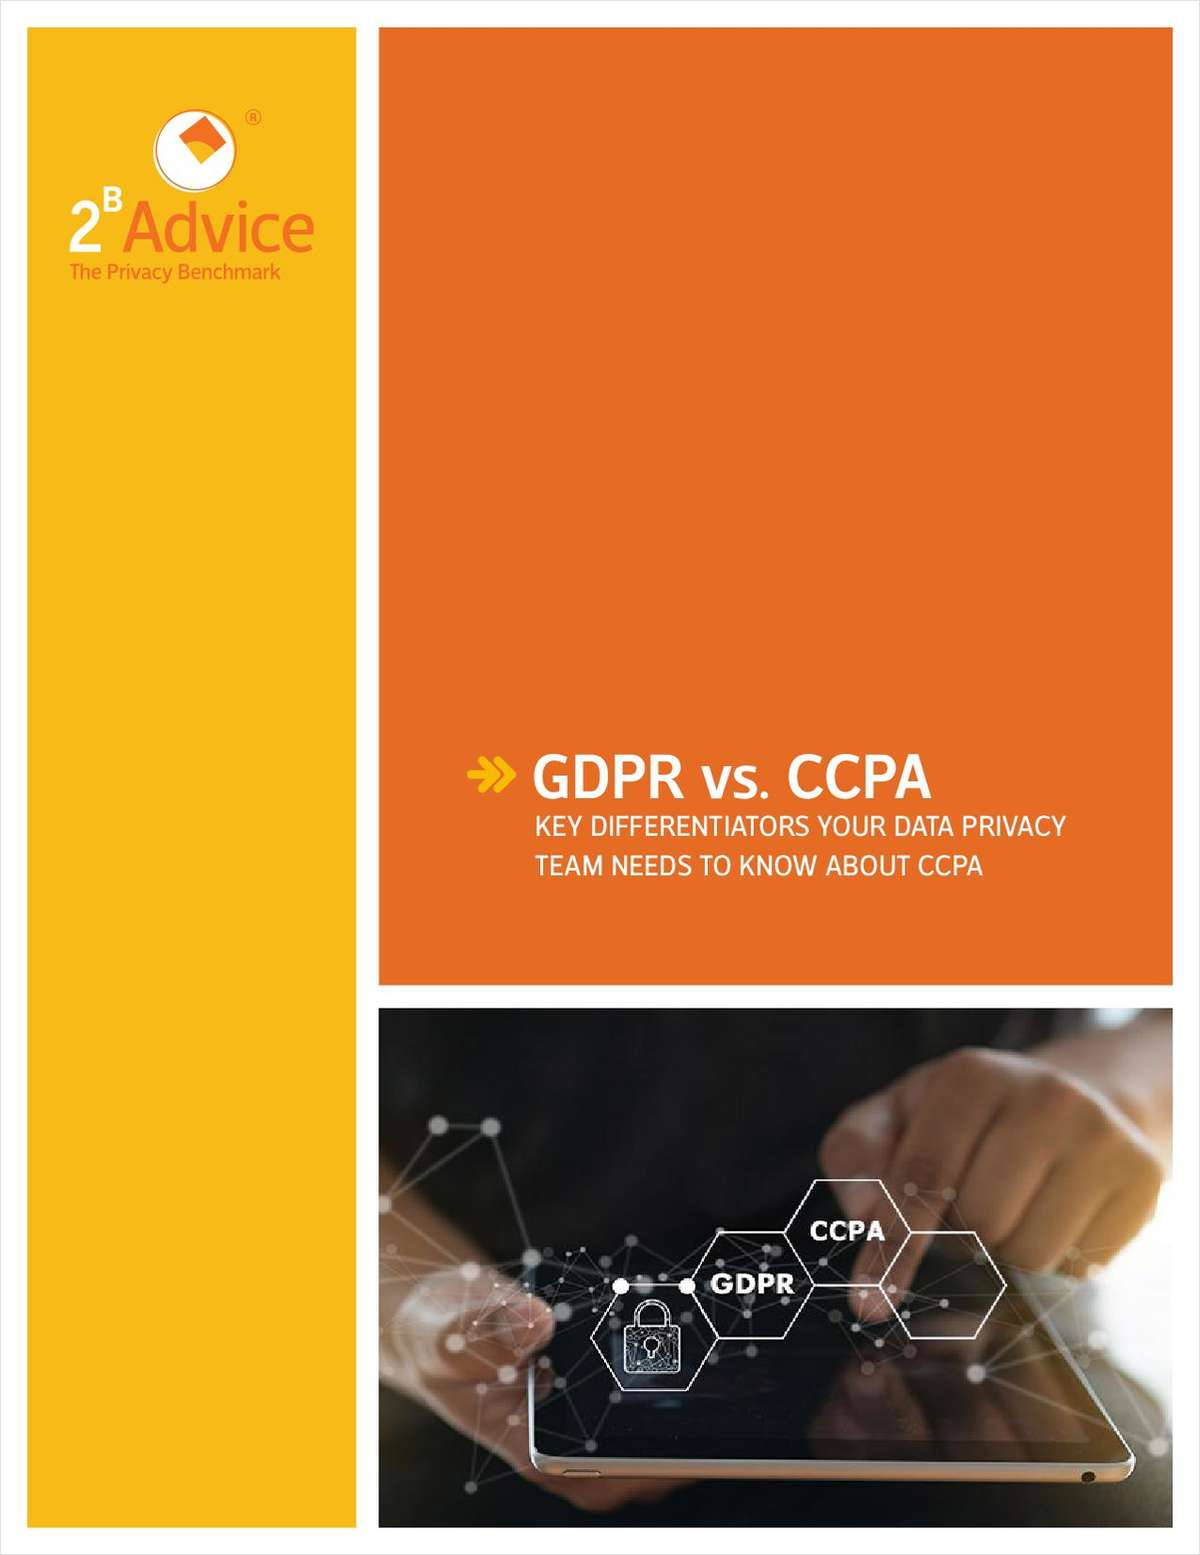 GDPR vs CCPA: Key Differentiators You Need to Know